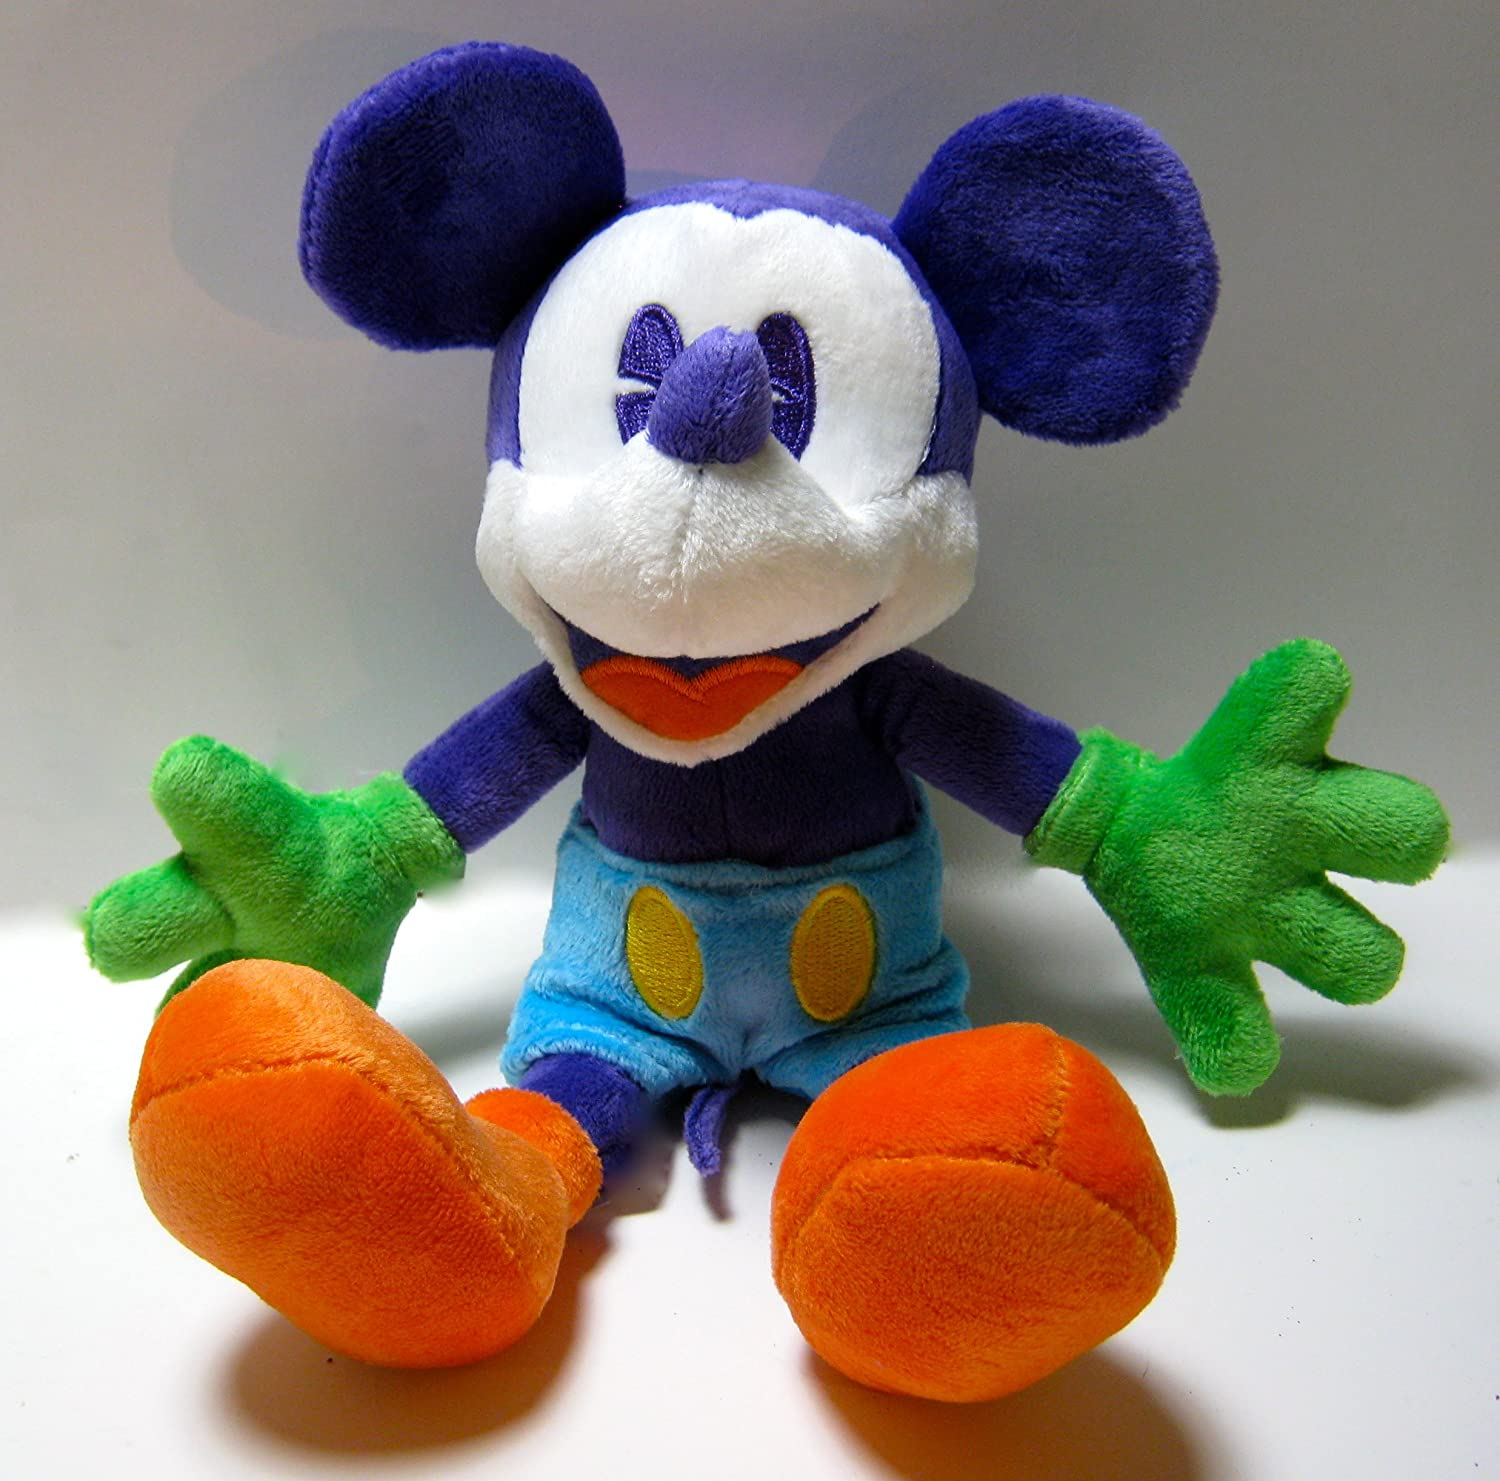 Retired Disney Theme Park Exclusive Multi colord Purple, Green and orange 9  Plush Mickey Mouse Bean Bag